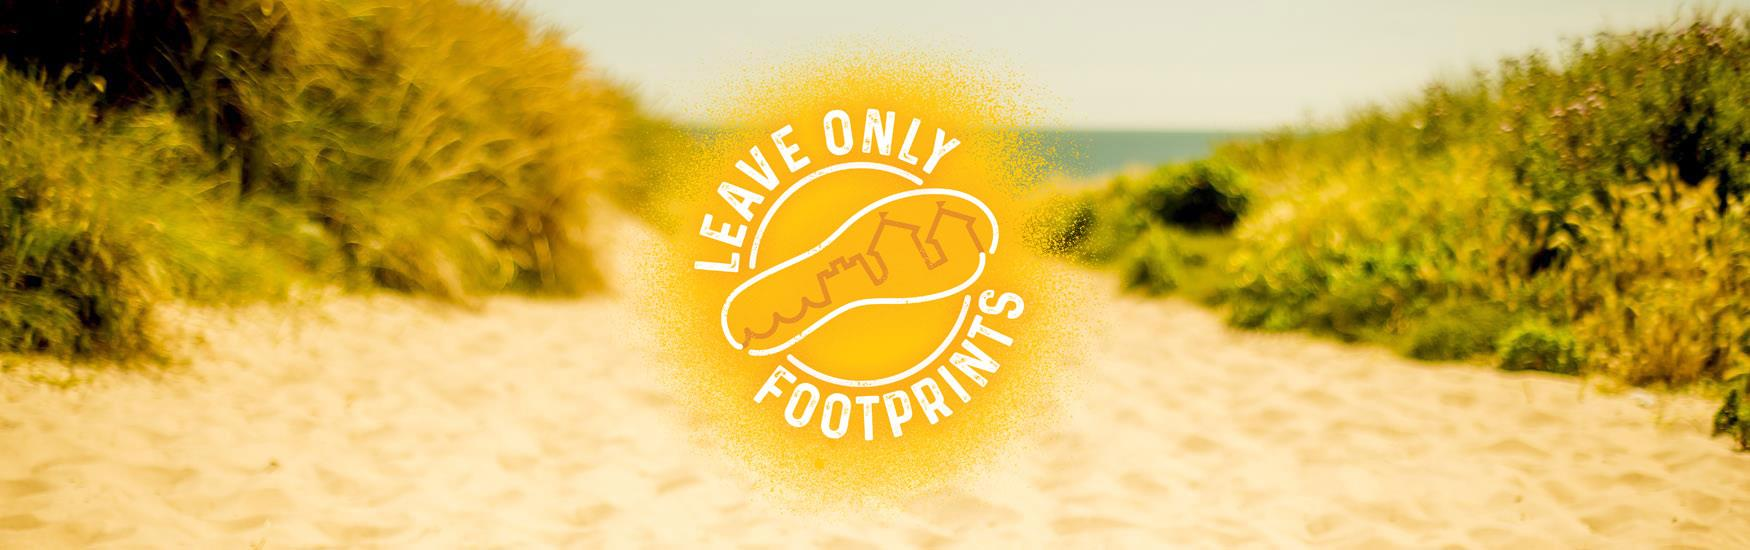 Sunny beach background with Leave only footprints logo in front